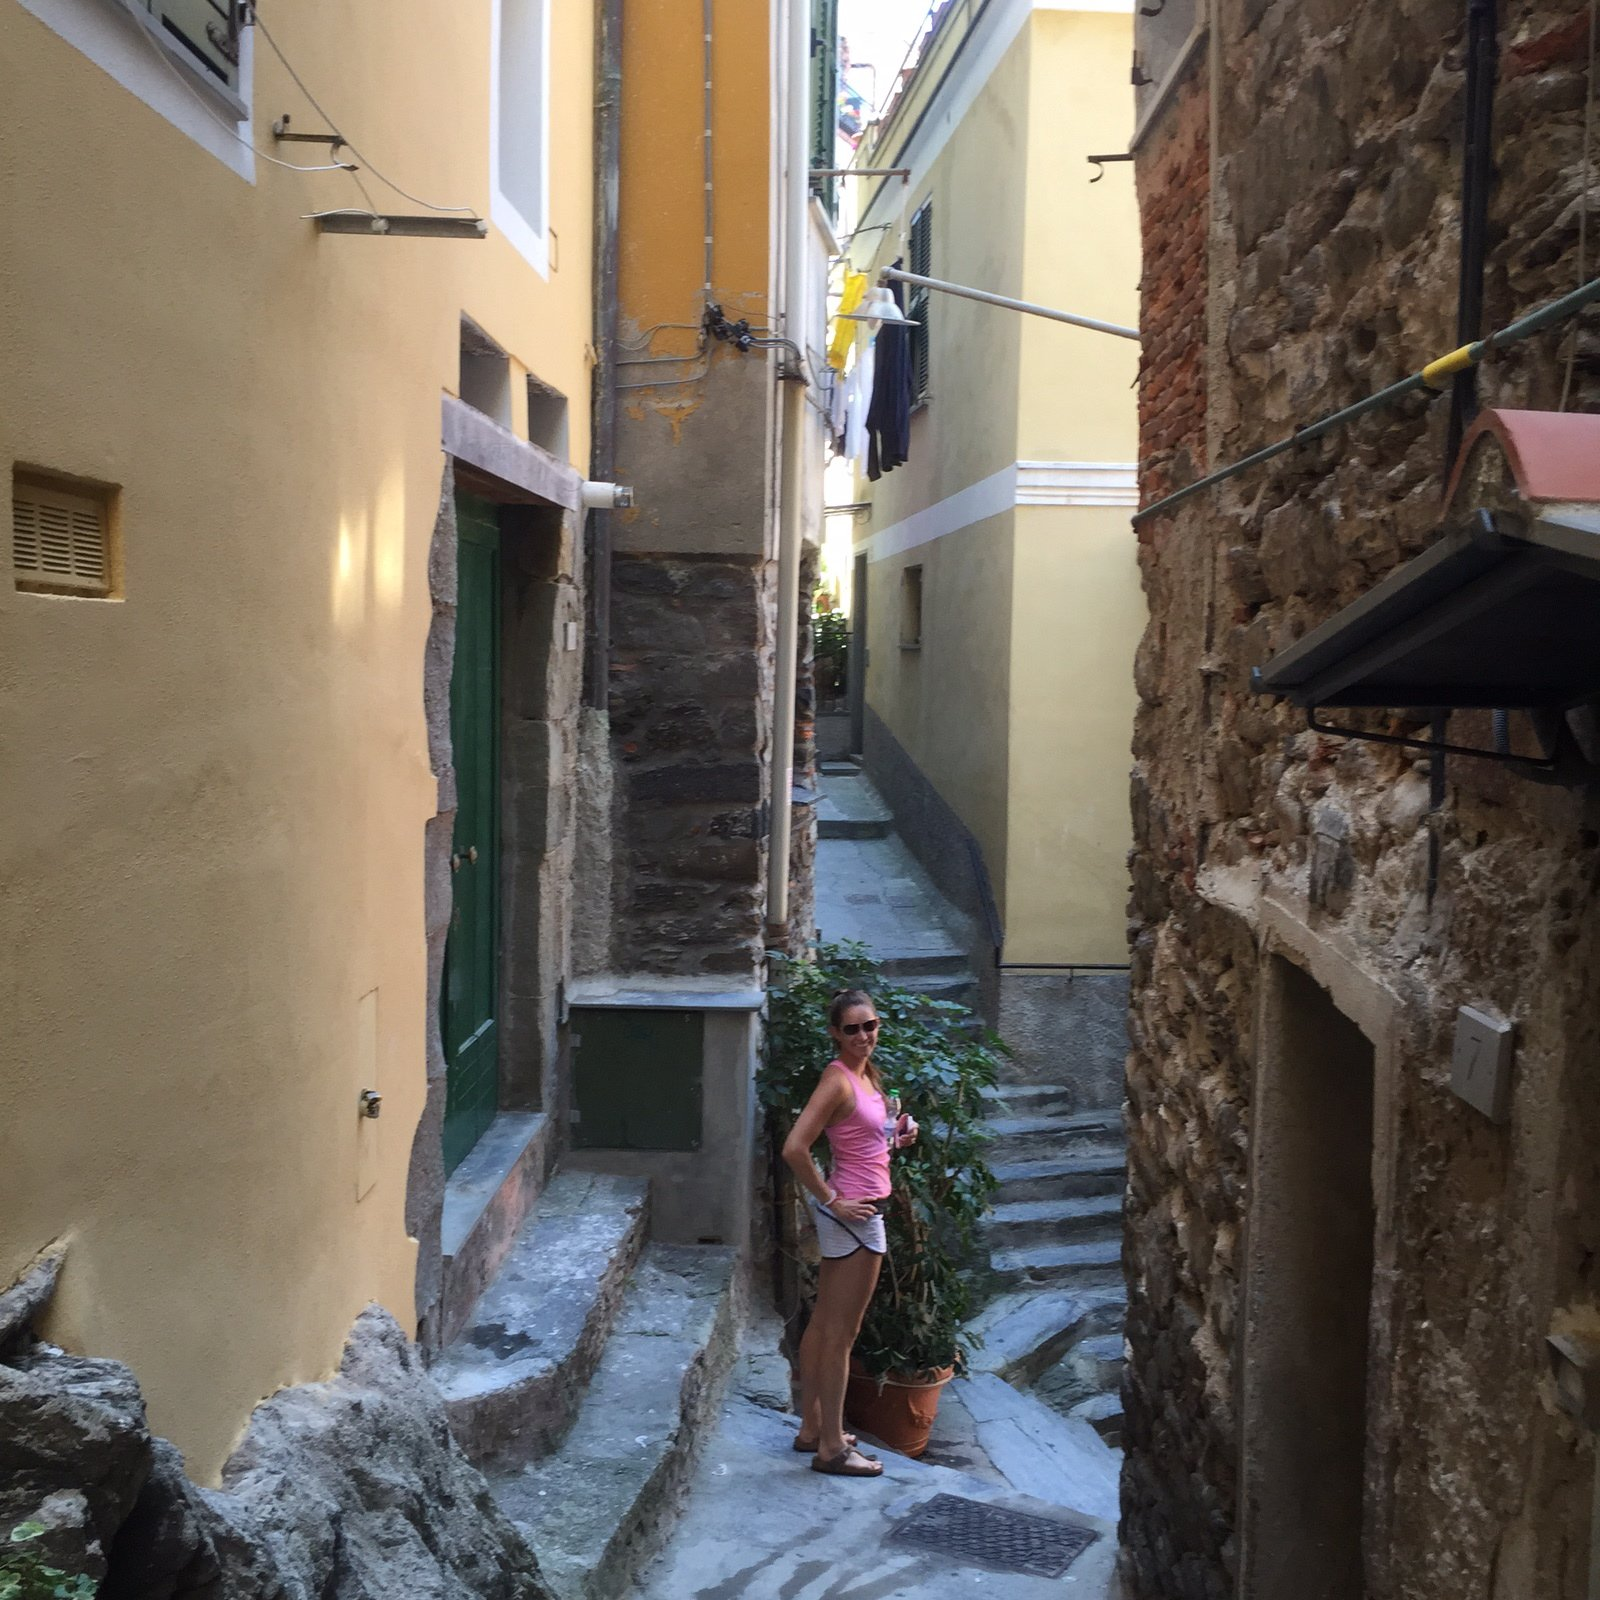 Young American woman walking down narrow and steep walkways in Italy